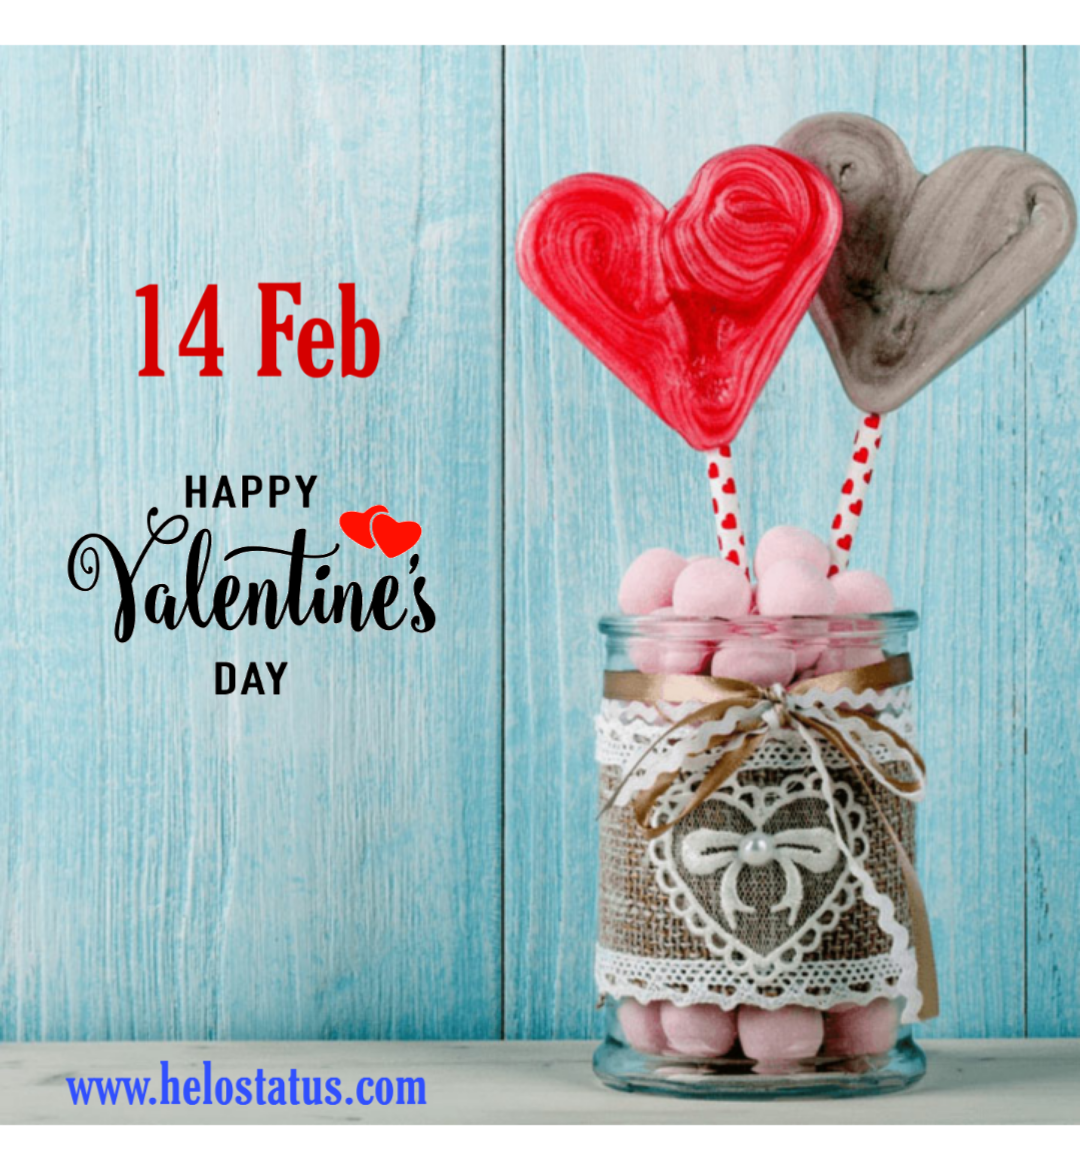 dp for Happy Valentine day